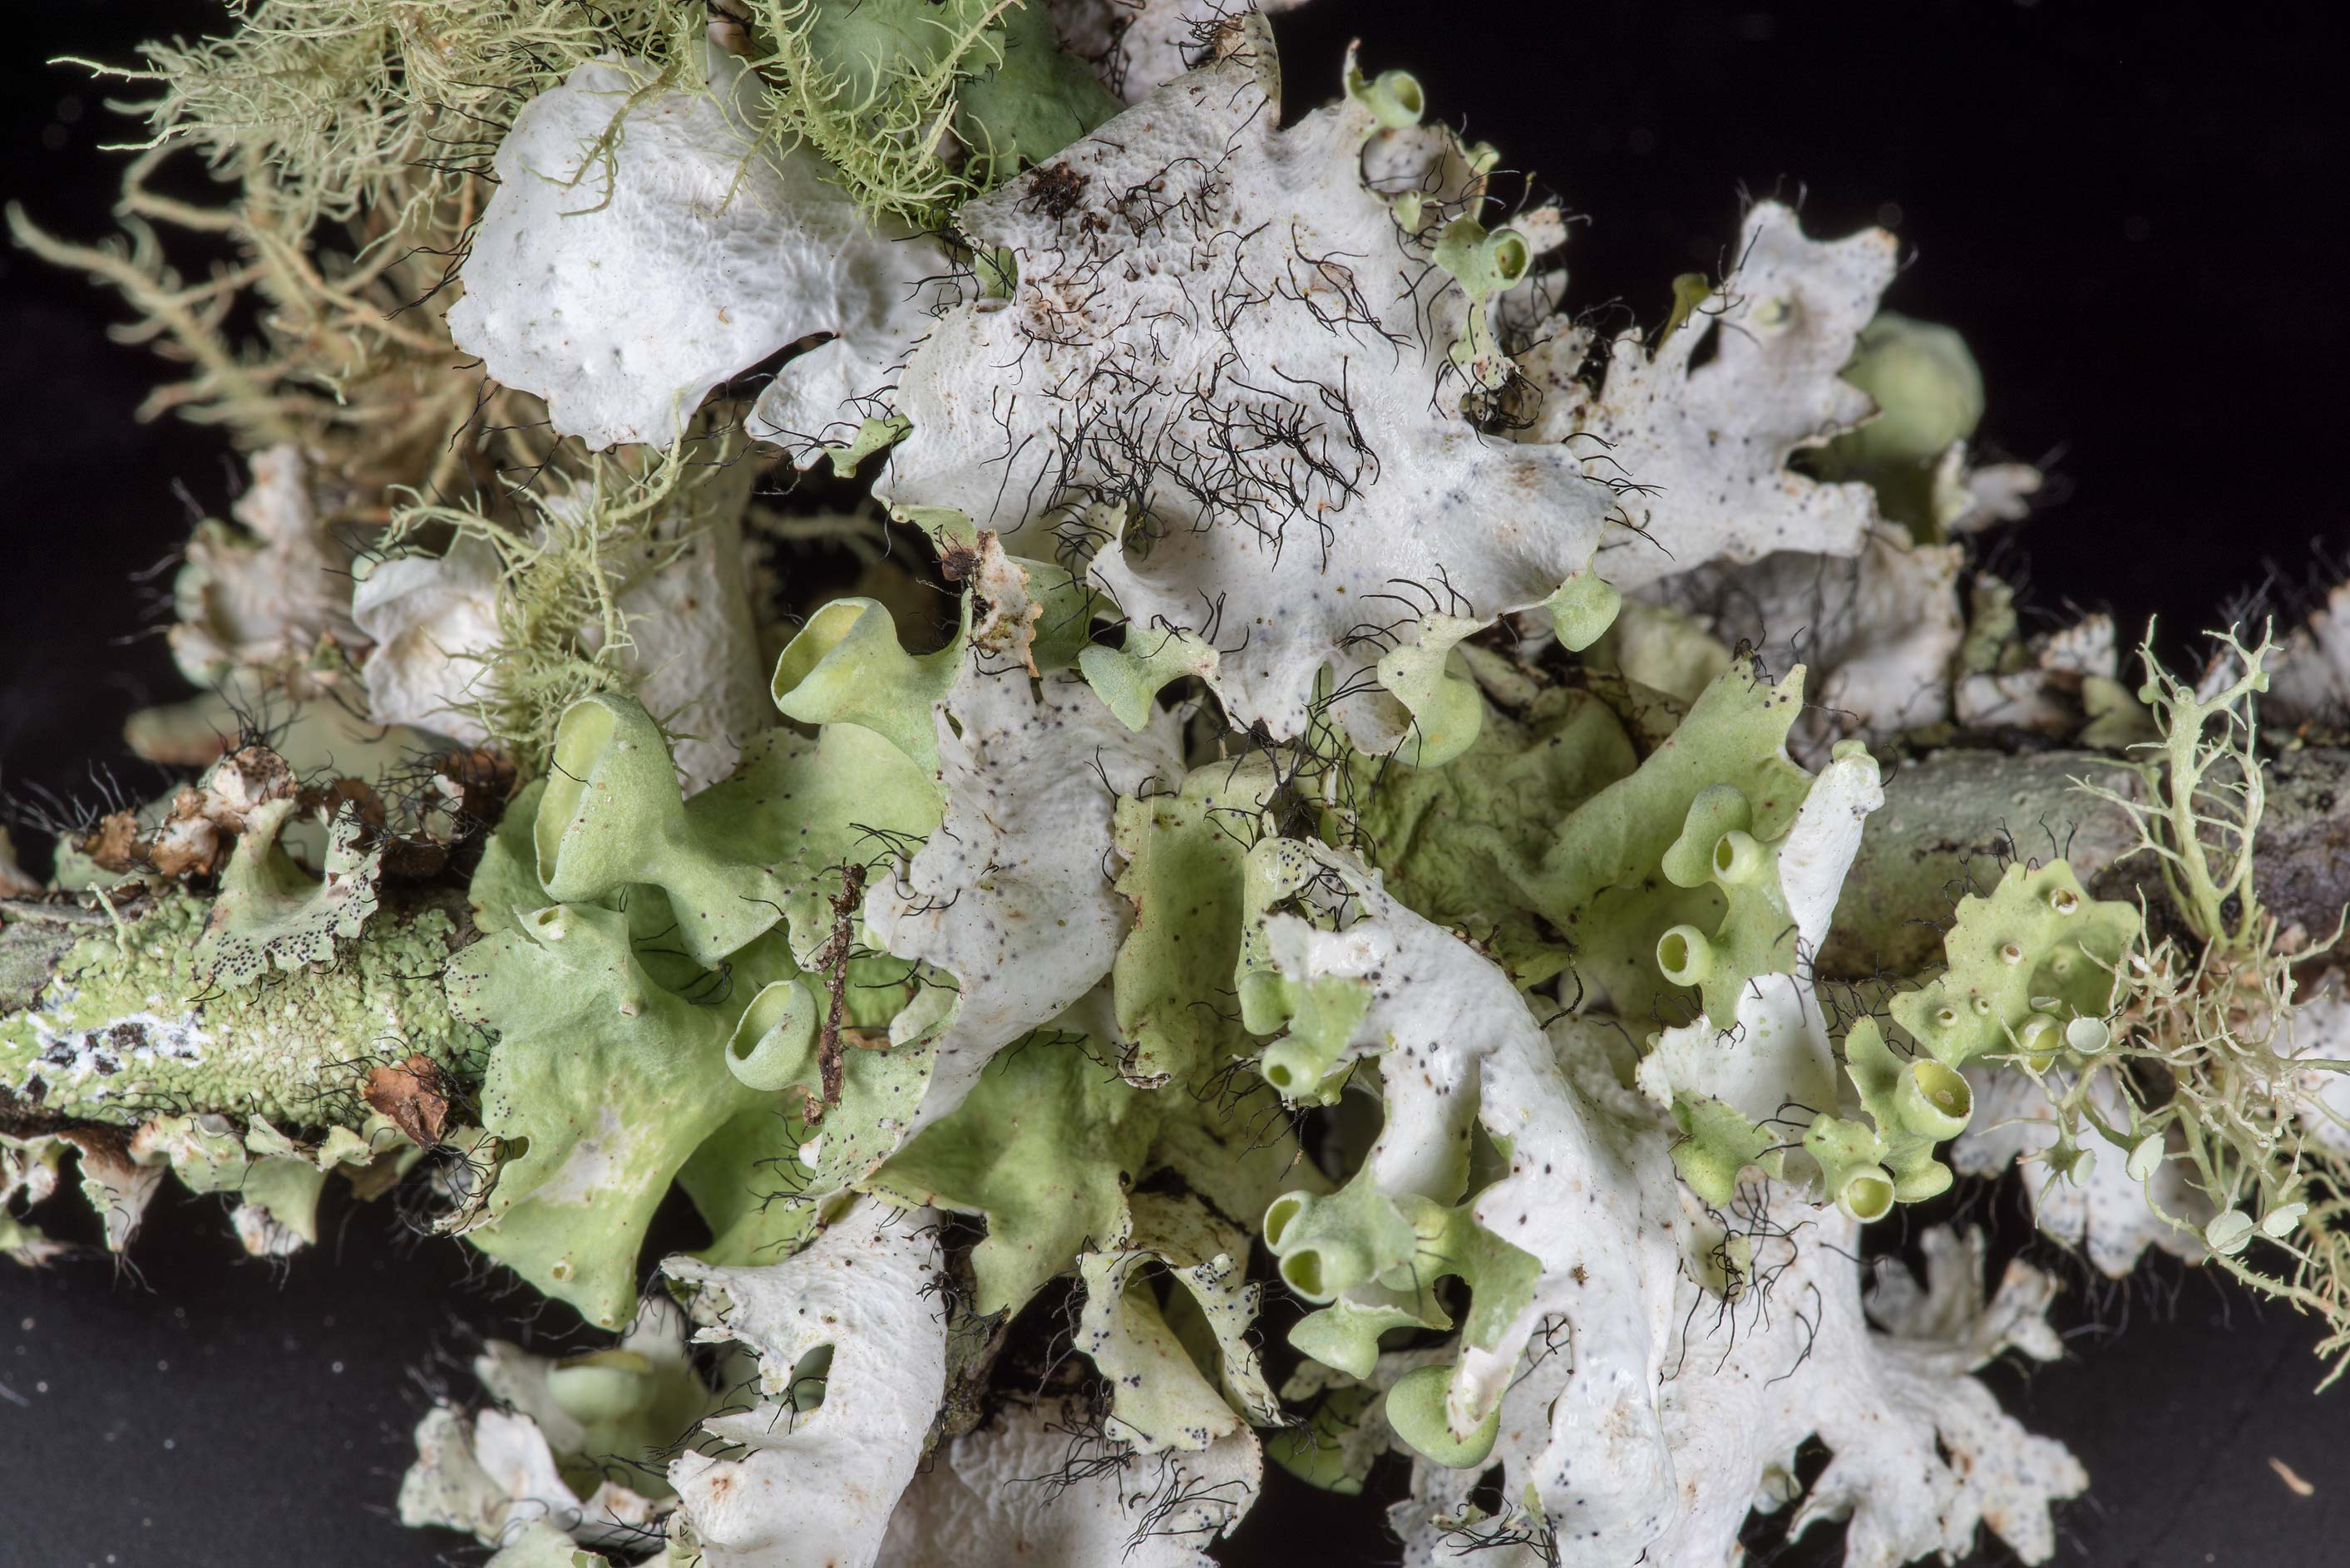 Underside of perforated ruffle lichen (Parmotrema...Creek Park. College Station, Texas